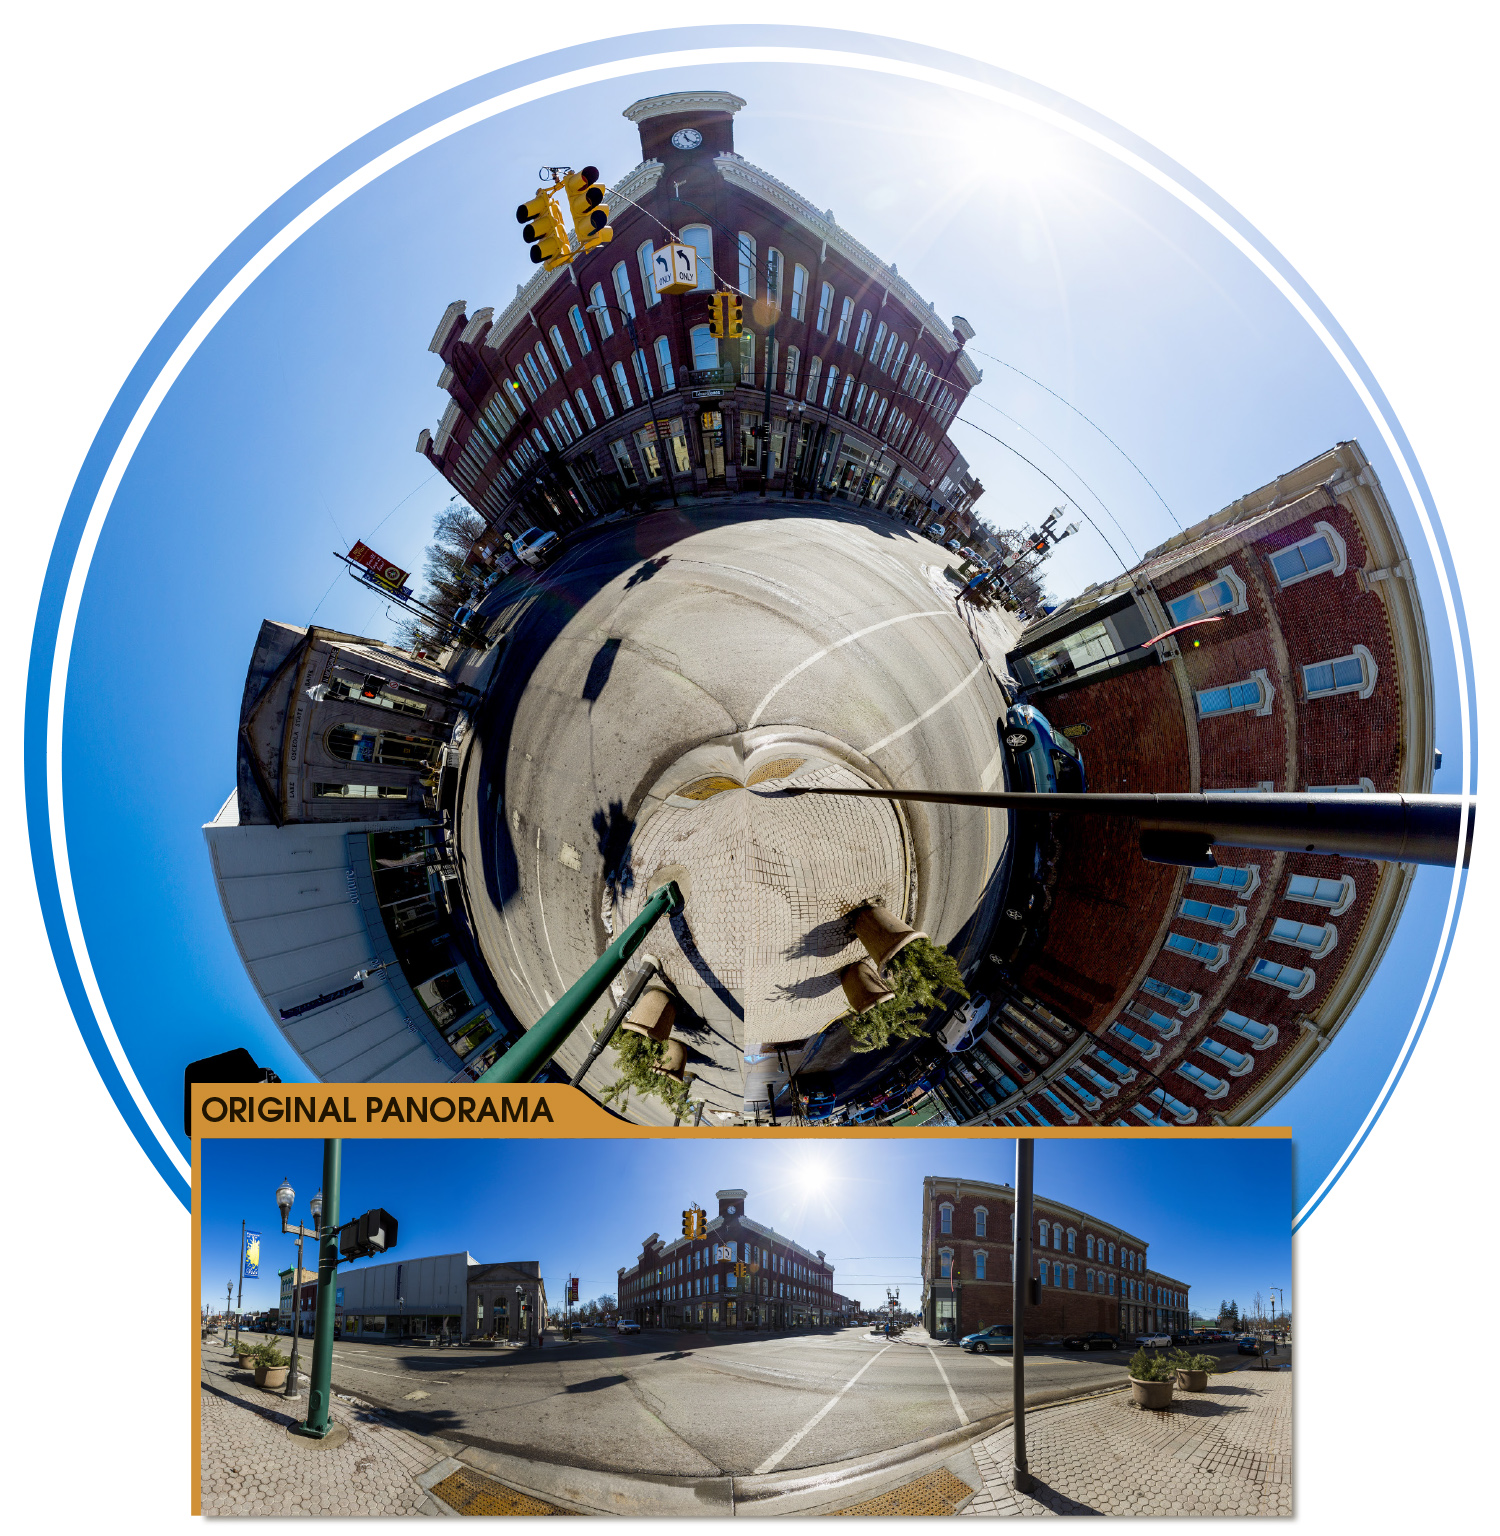 DOWNTOWN: Creating a miniature planet of downtown Big Rapids proved to be more difficult than the one I made in Hemlock Park. Many wires and poles shoot off the edge of the image, and finding the right place to shoot the panorama without getting ran over by cars was tricky. You'll notice that for the panorama (which isn't a full 360-degree shot), I made sure that the sidewalk was on the left and right edges of the image. This made creating the planet much easier in Photoshop.